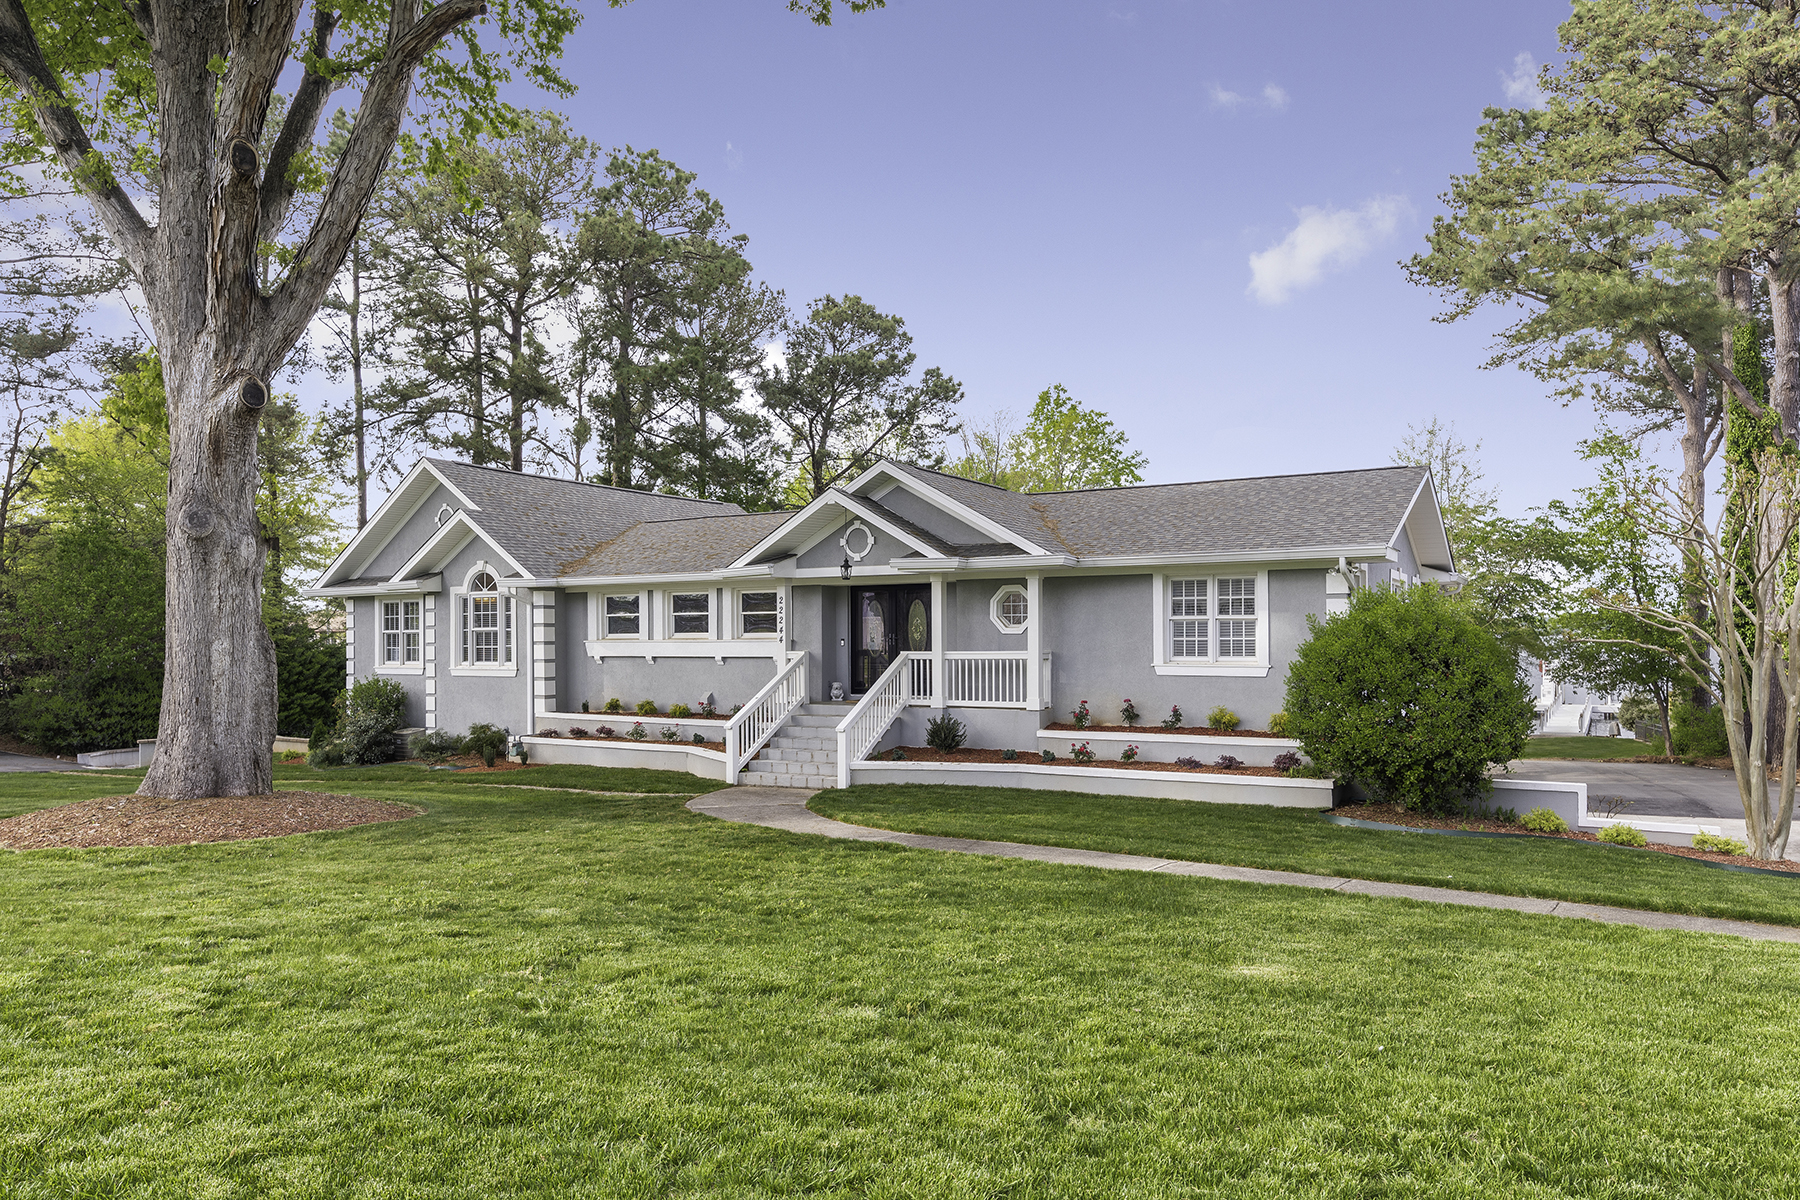 Single Family Home for Active at 22244 Country Club Cir Cornelius, North Carolina 28031 United States